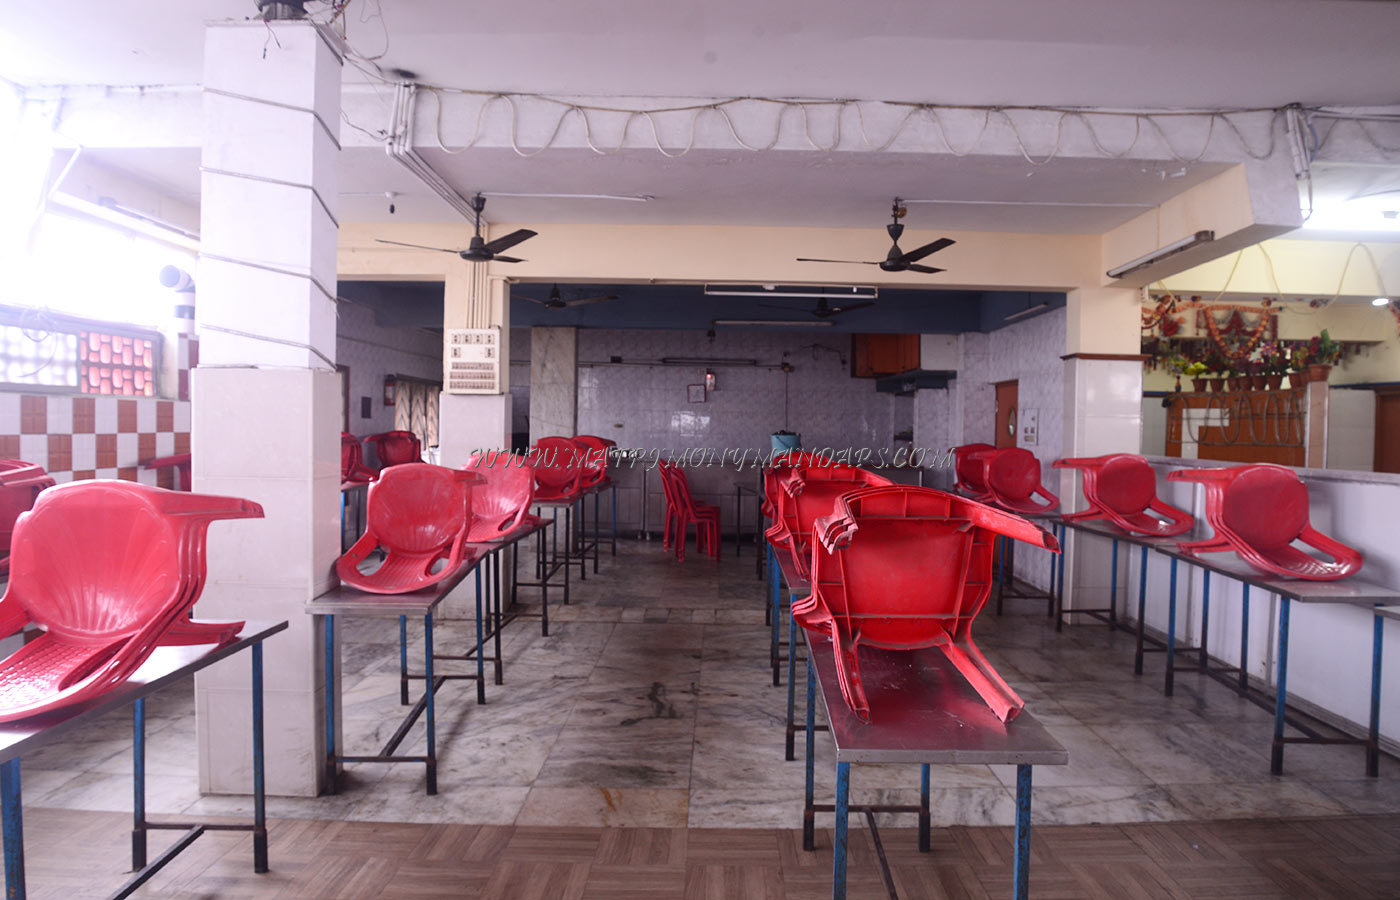 Find the availability of the Hotel Raaj Bhaavan Platinum Hall in Purasawalkam, Chennai and avail special offers